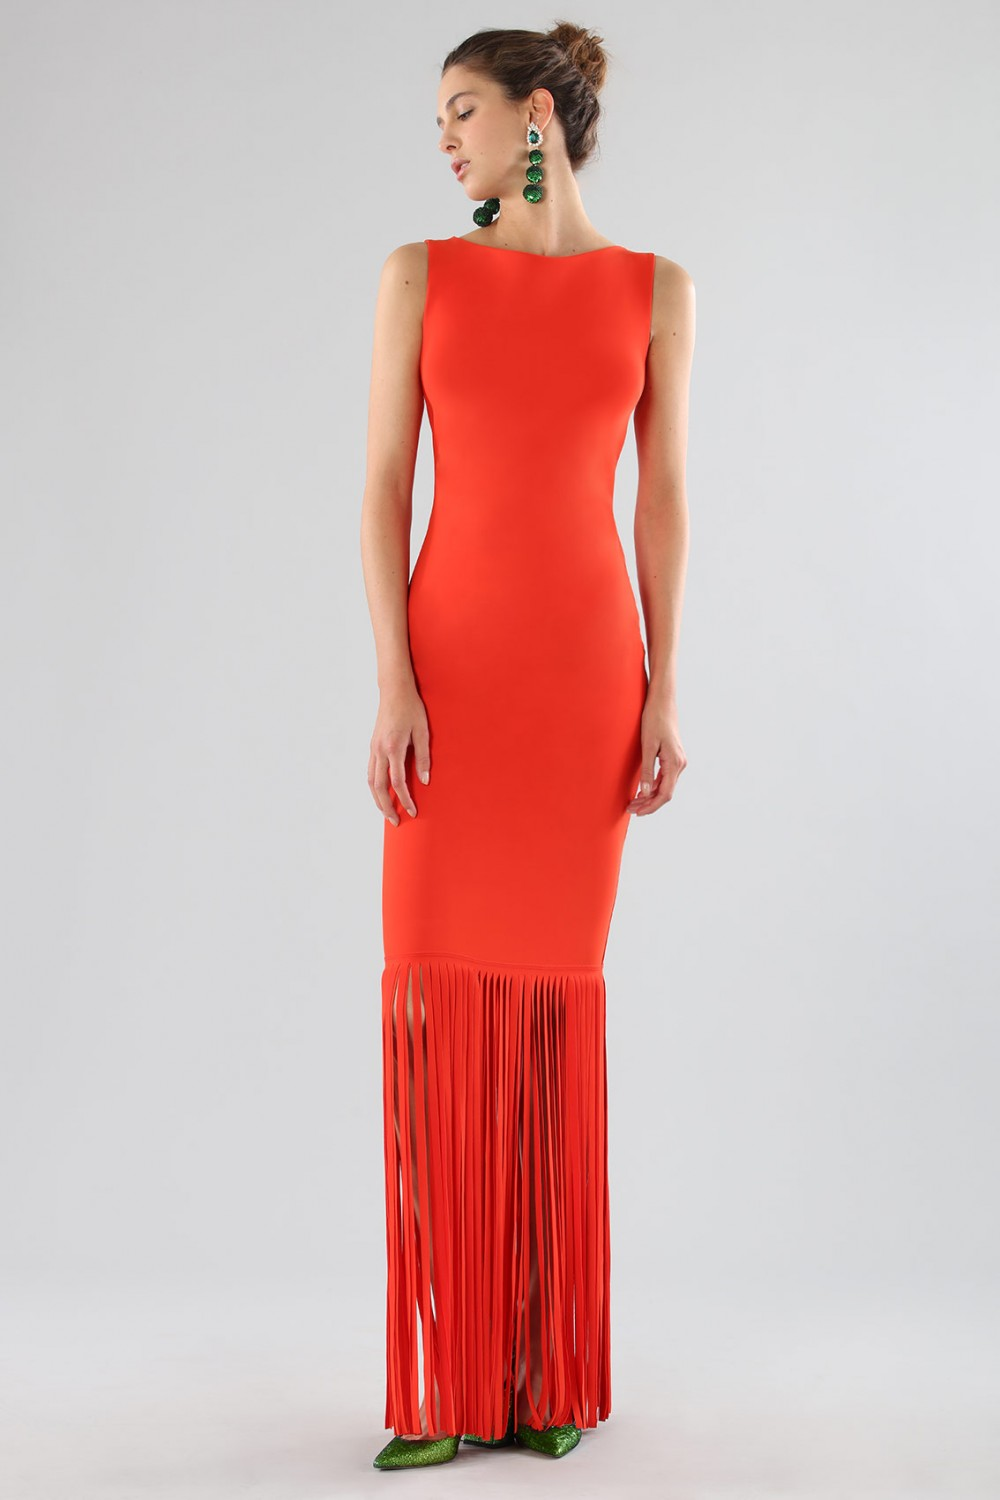 Red dress with fringes